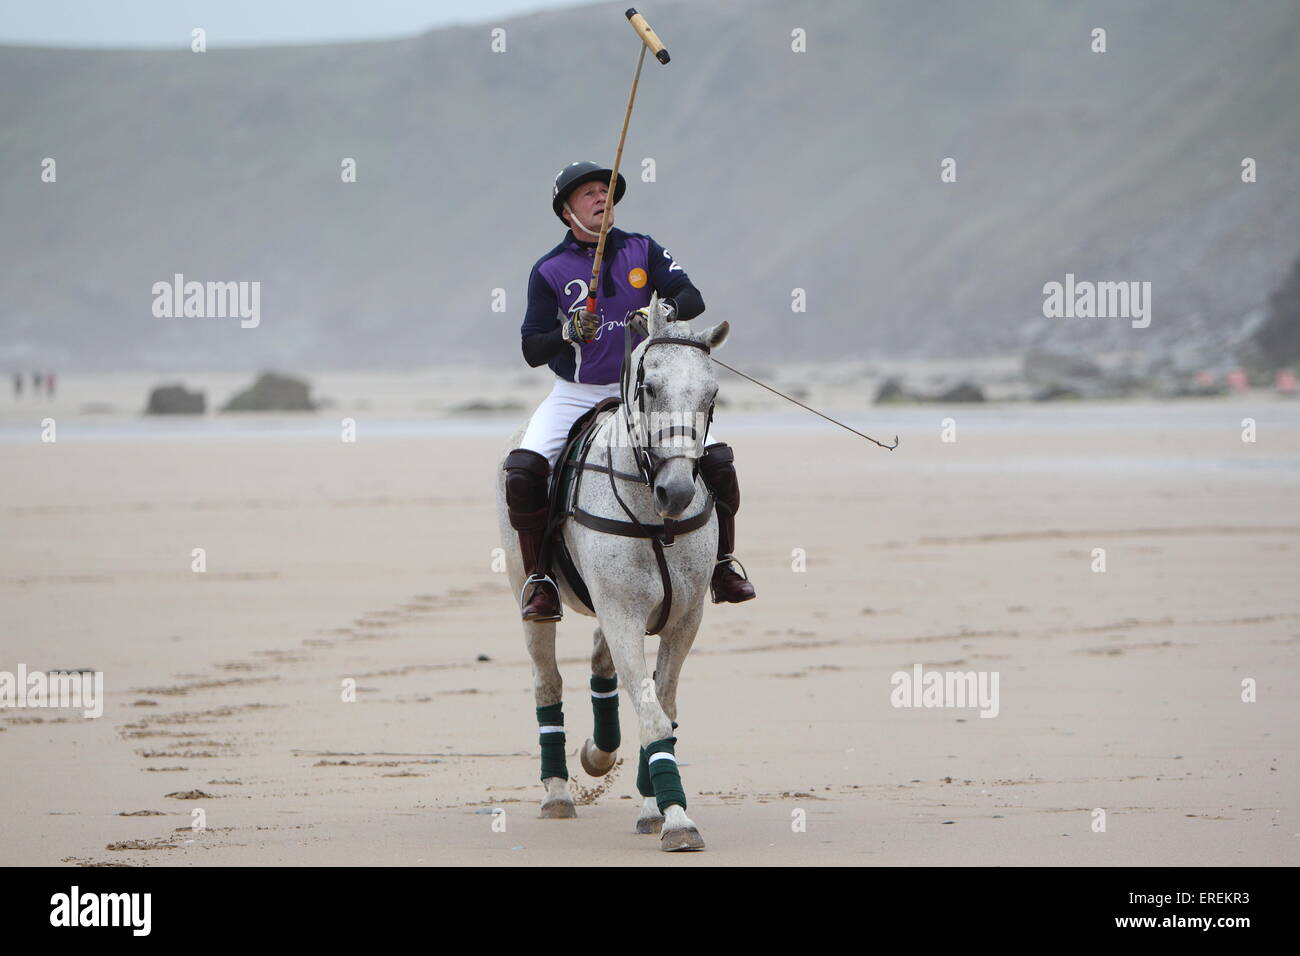 Watergate Bay, Newquay, Cornwall, UK. 2nd June, 2015. Professional Polo player Andy Burgess riding Tonka practices - Stock Image